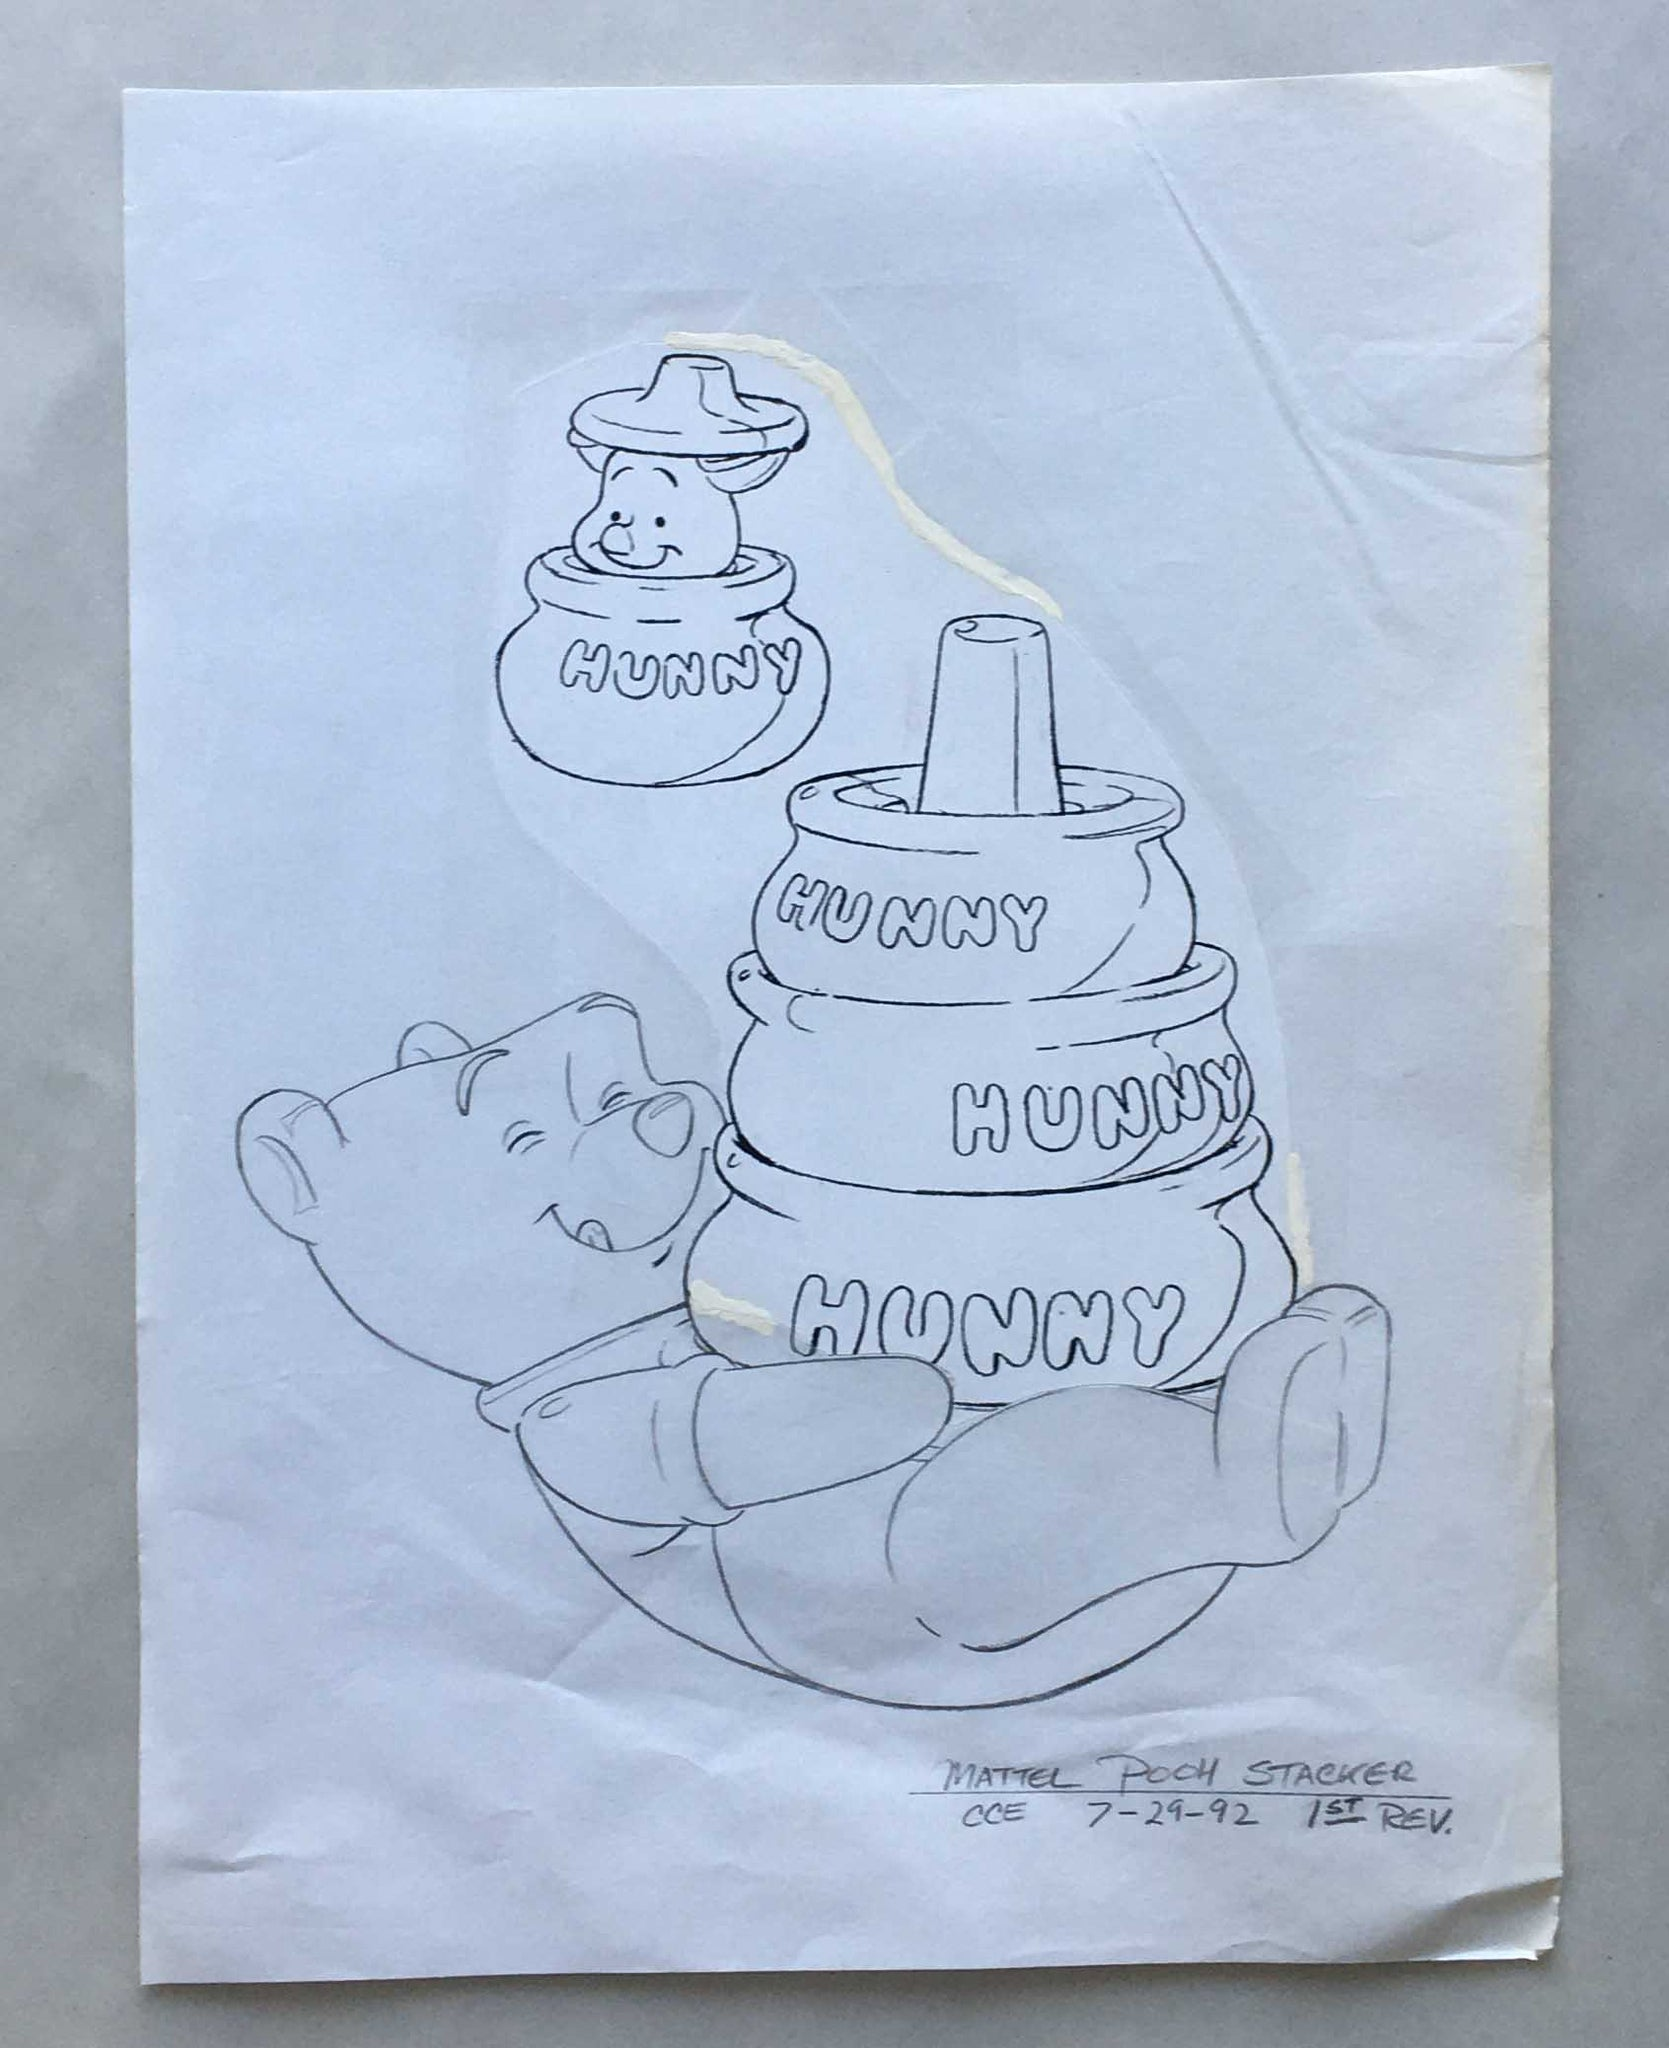 Winnie the Pooh Mattel Toy Sketch (EX0291) - Animation Legends